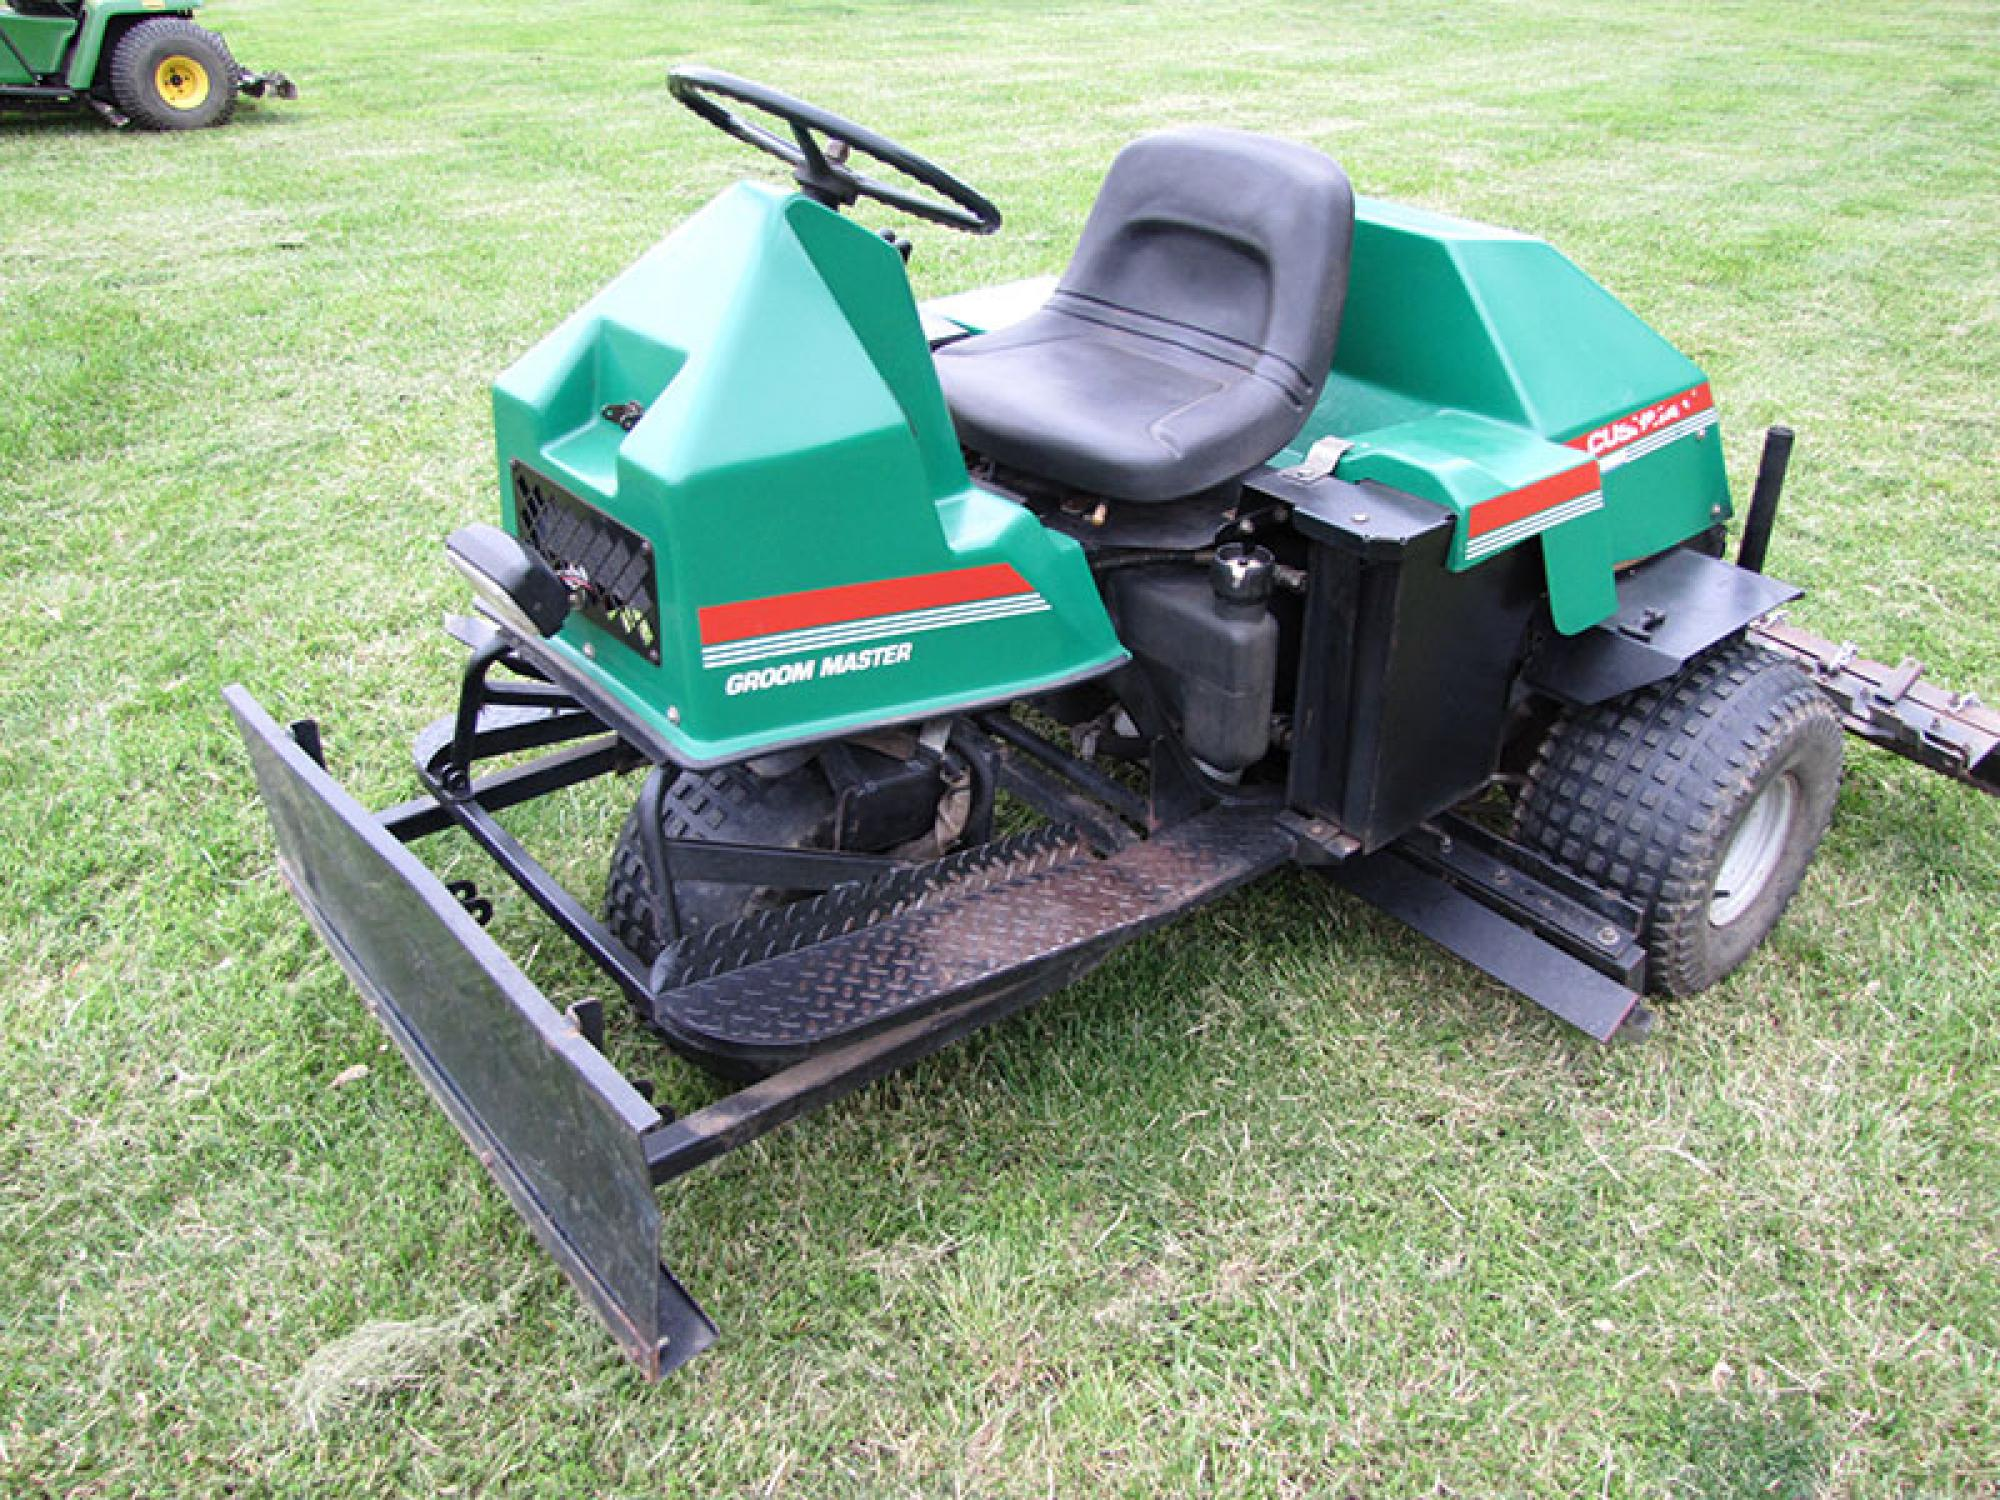 turf maintenance golf course equipment auction the wendt group rh thewendtgroup com Cushman Groom Master Attachments For Cushman Groom Master Infield Groomer